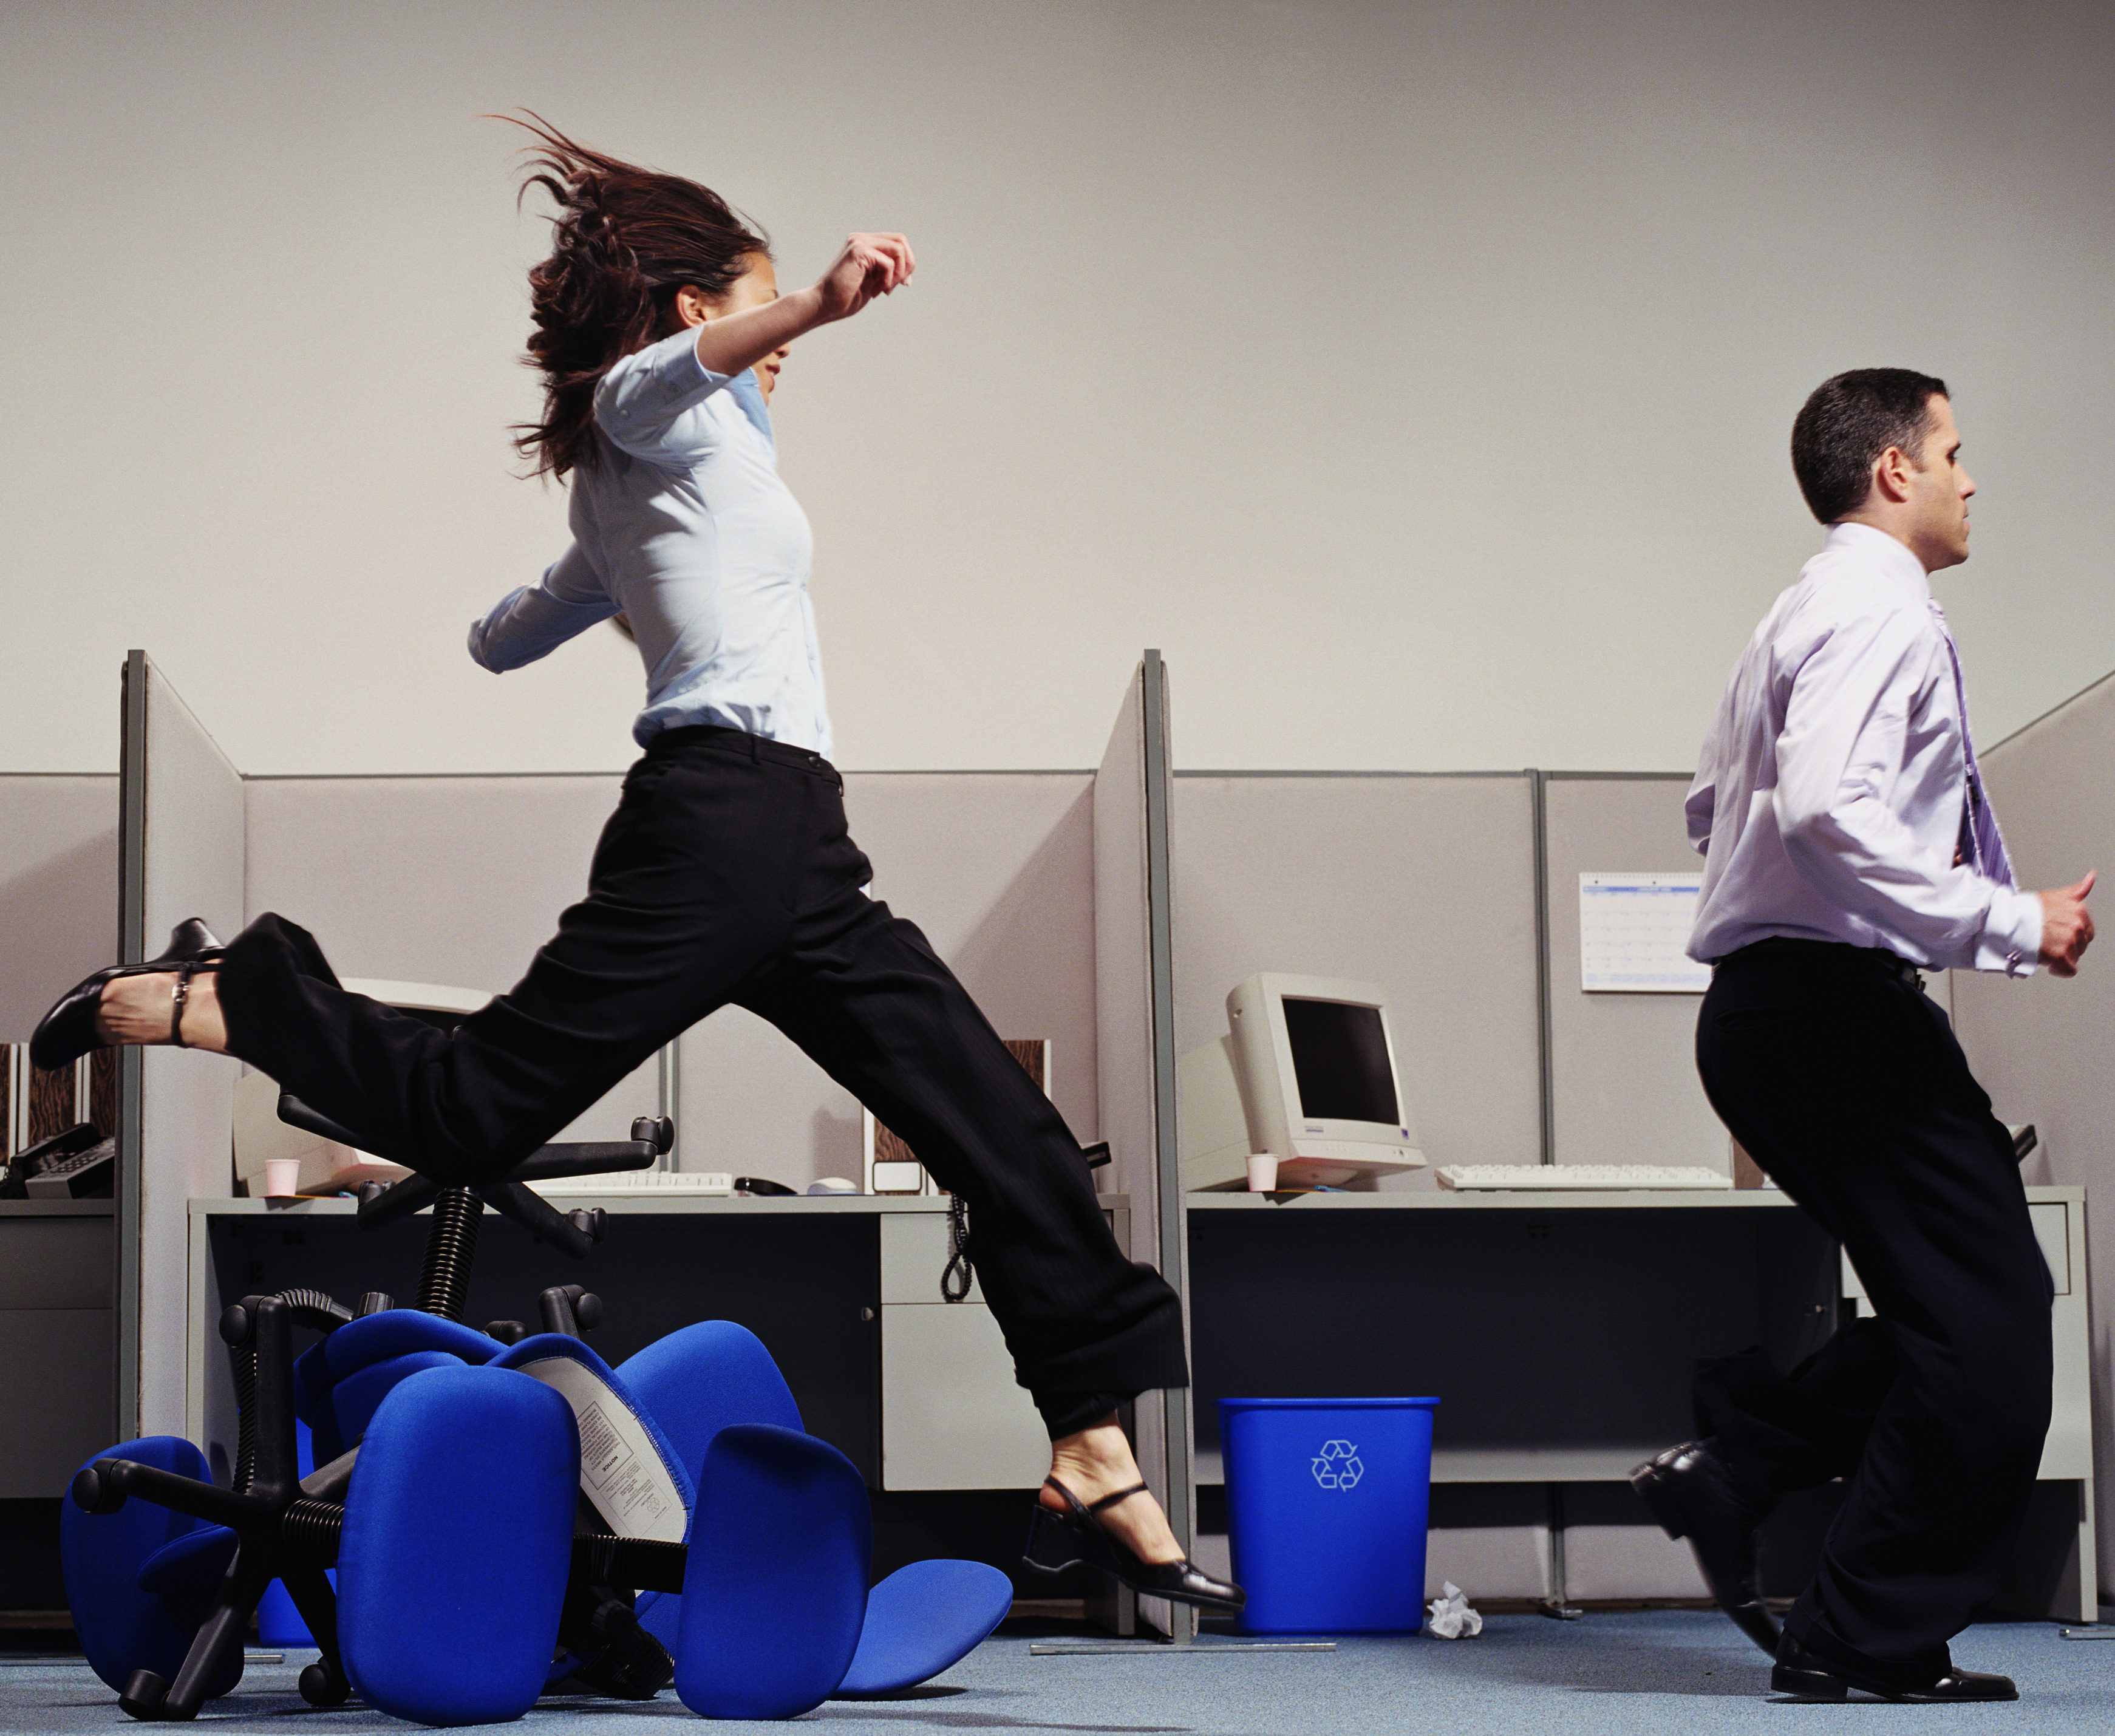 Man and woman running through office, hurdling chairs